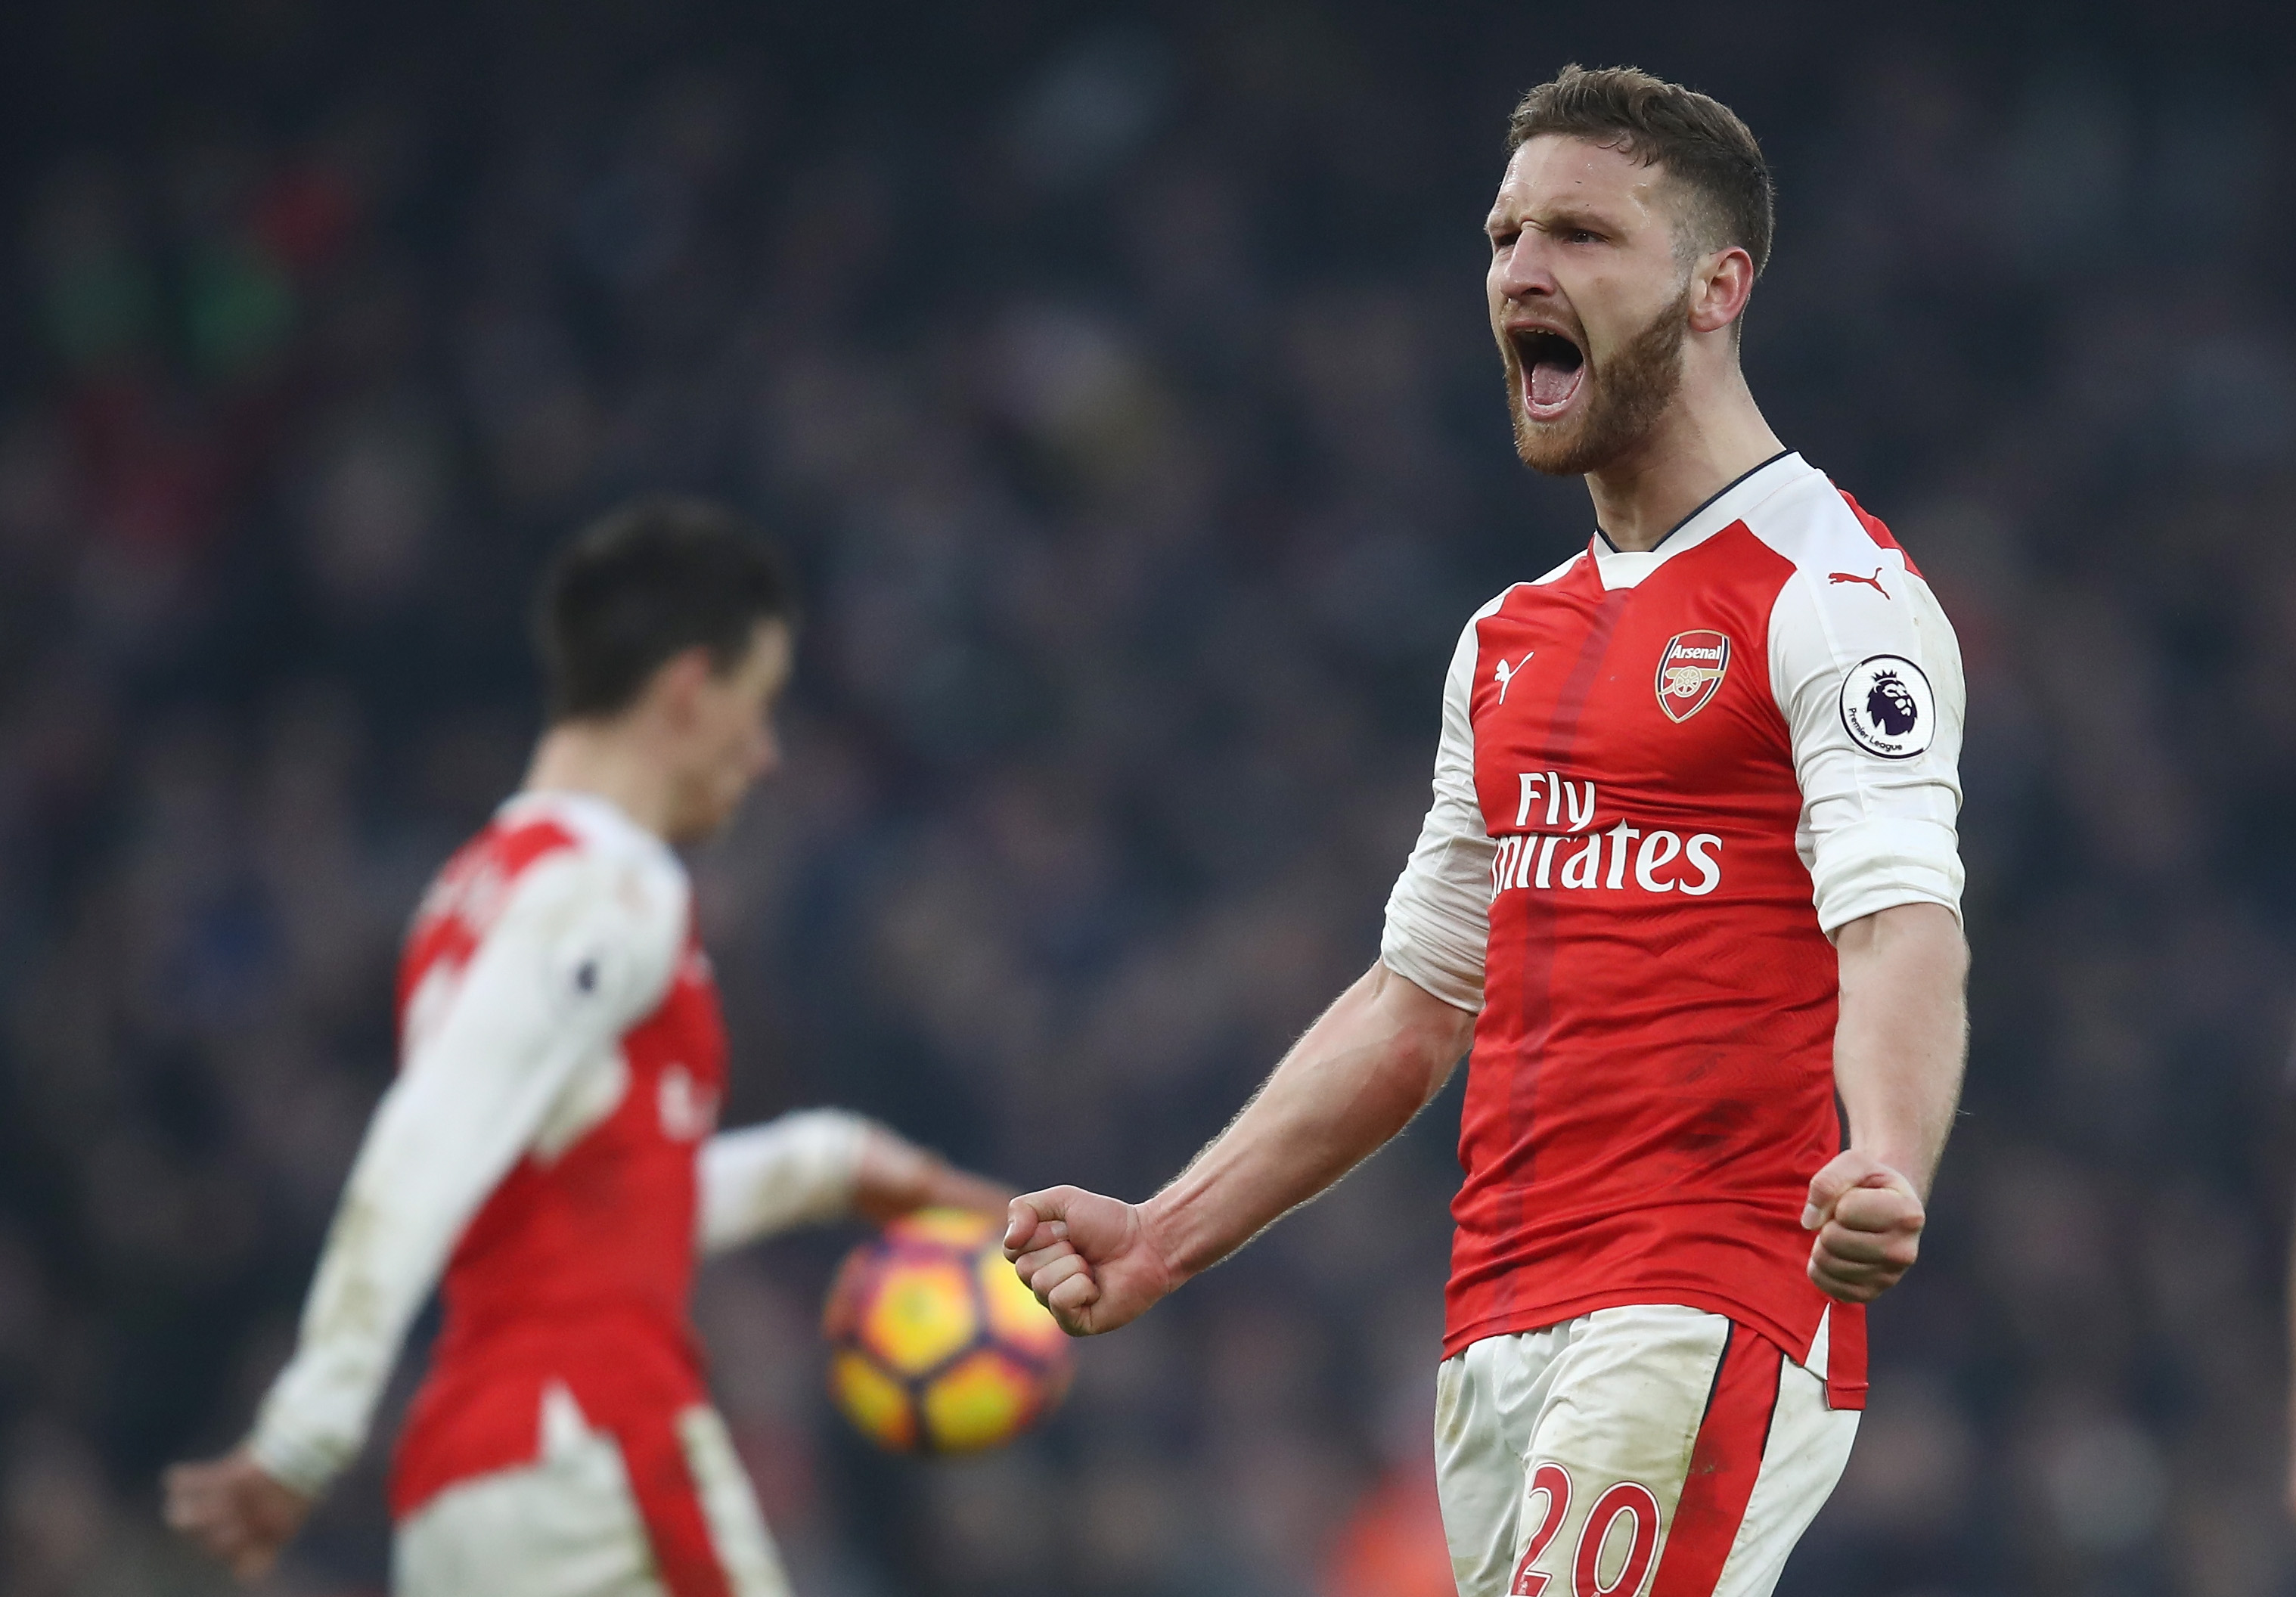 LONDON, ENGLAND - JANUARY 22: Shkodran Mustafi of Arsenal celebrates his side's 2-1 win after the Premier League match between Arsenal and Burnley at the Emirates Stadium on January 22, 2017 in London, England. (Photo by Julian Finney/Getty Images)